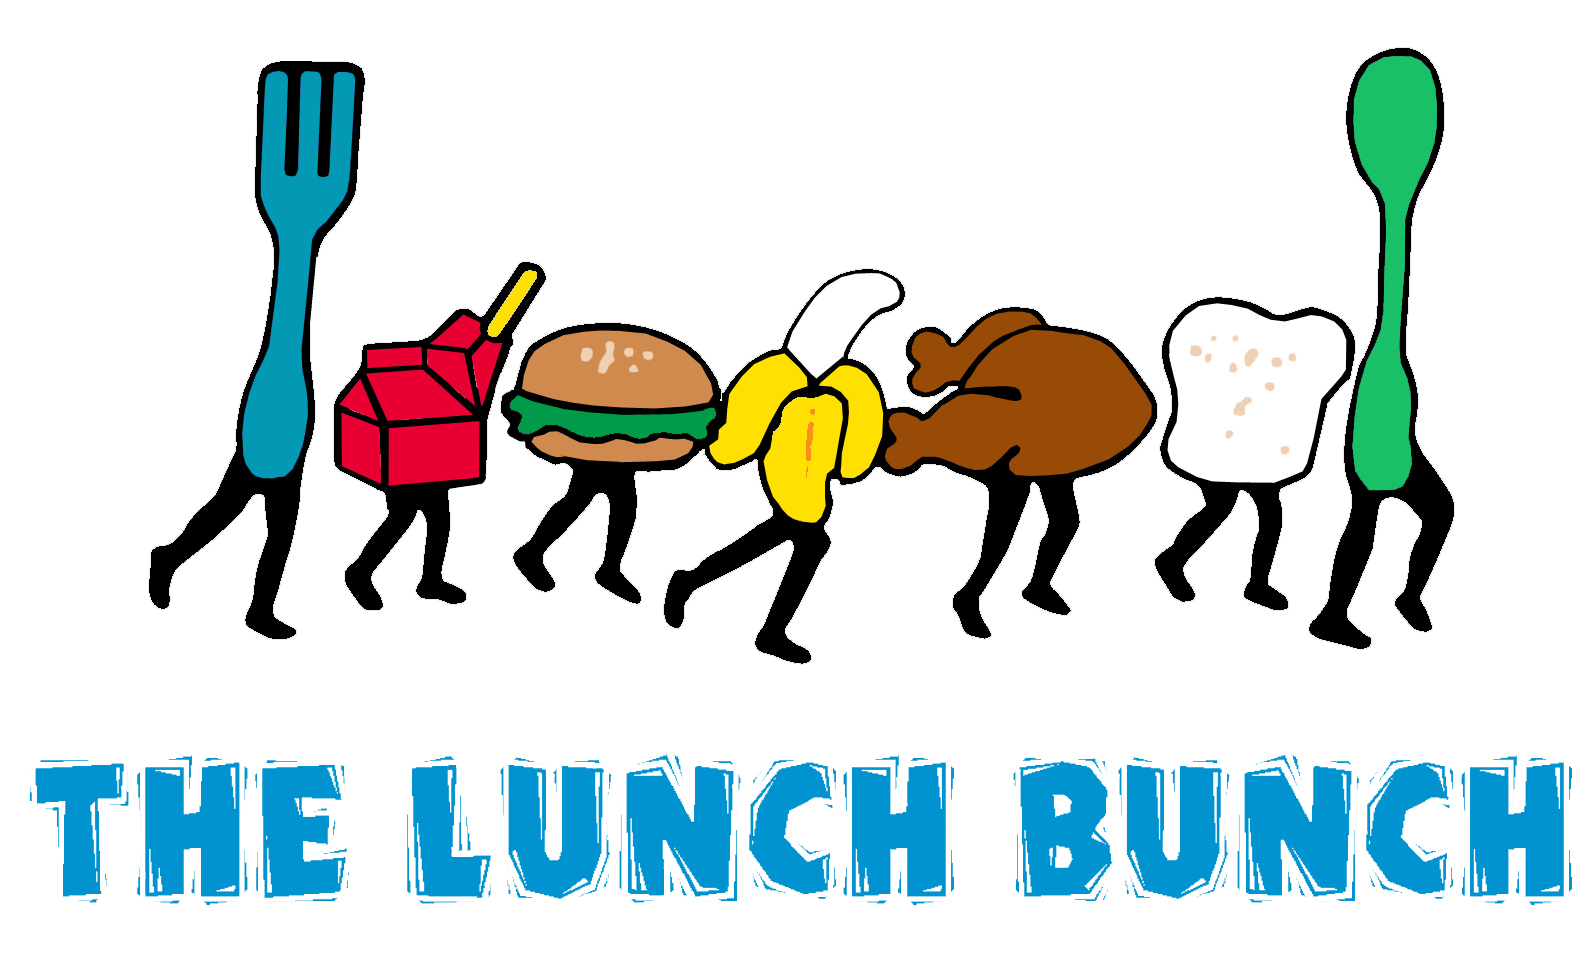 Lunch clipart lunch bunch. Station